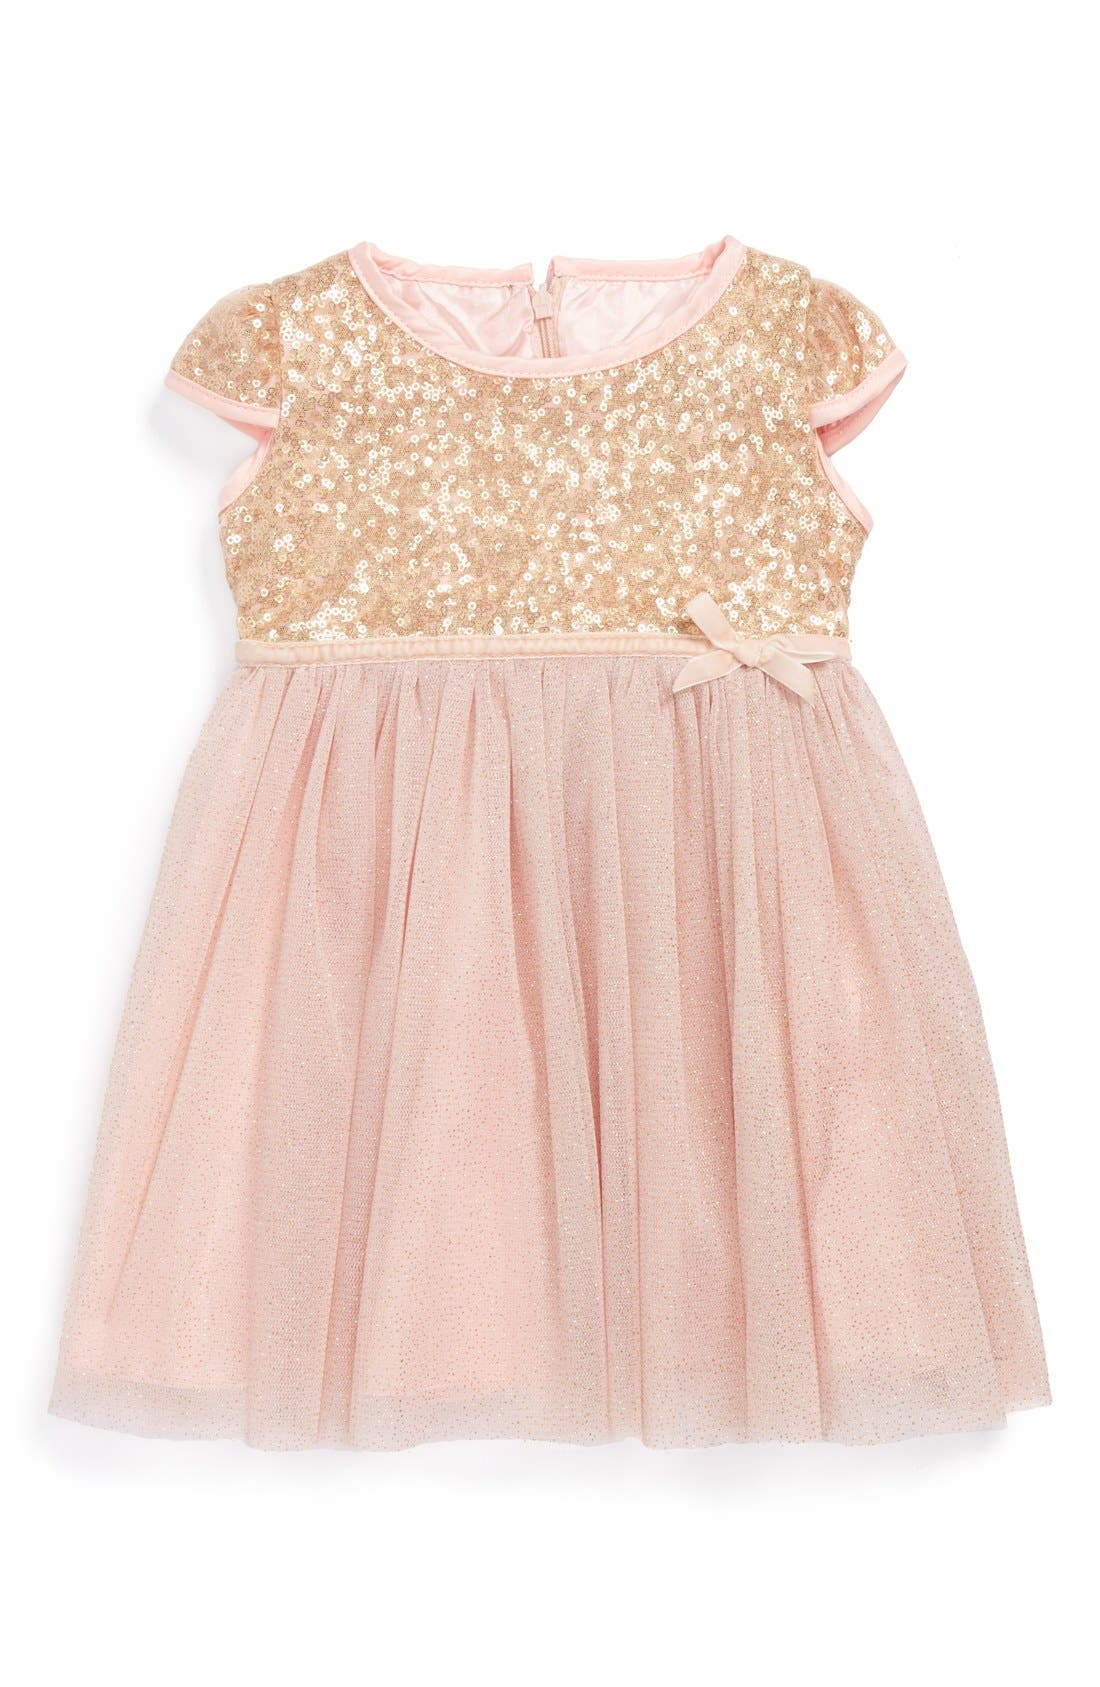 Main Image - Dorissa Tulle Sequin Dress (Baby Girls)